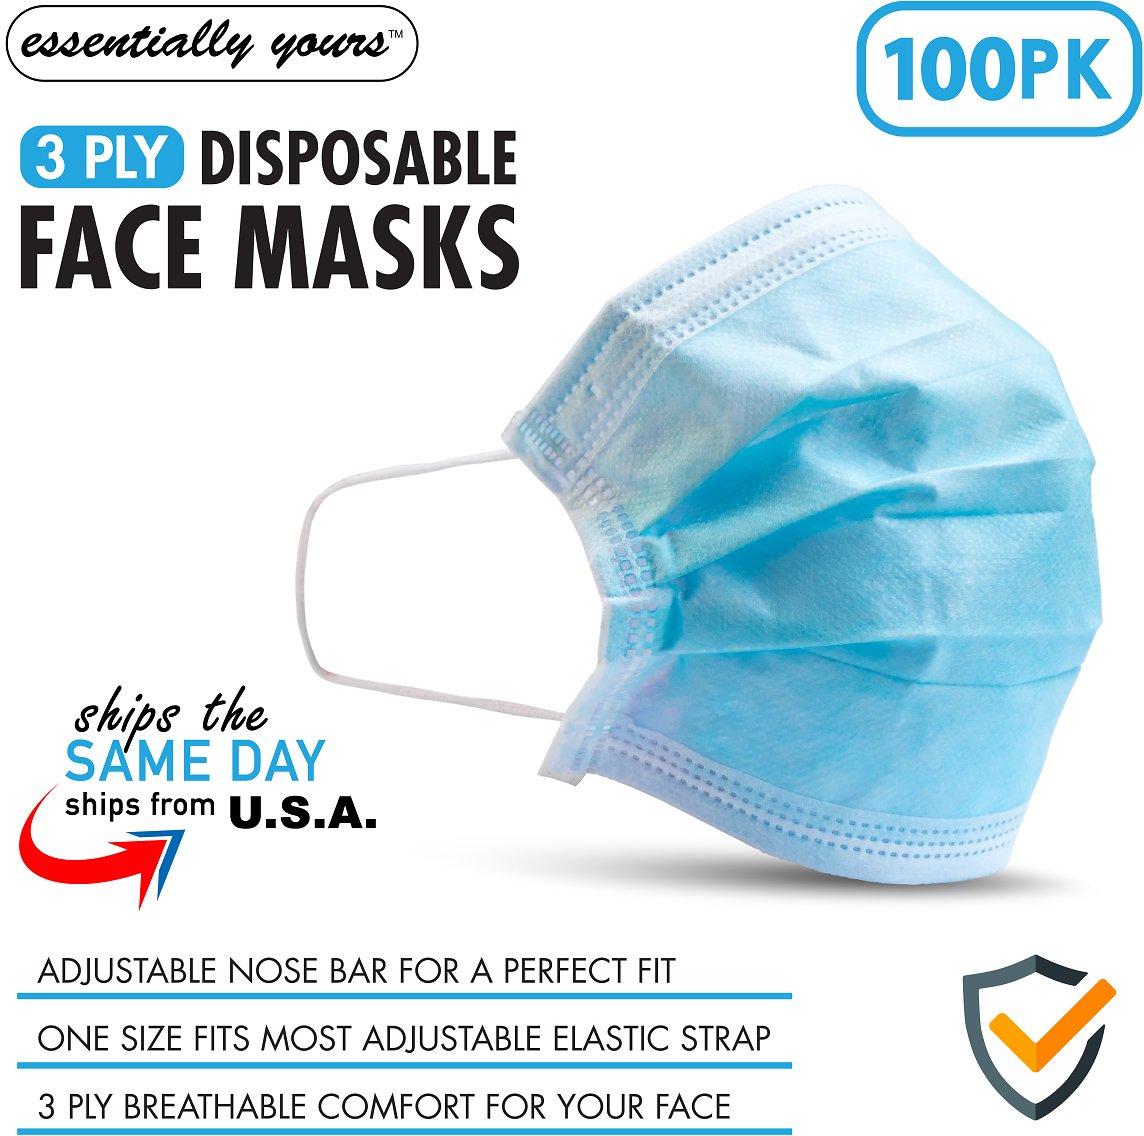 Essentially Yours Breathable 3 Ply Ear Loop Disposable Face Masks, 100-Pack